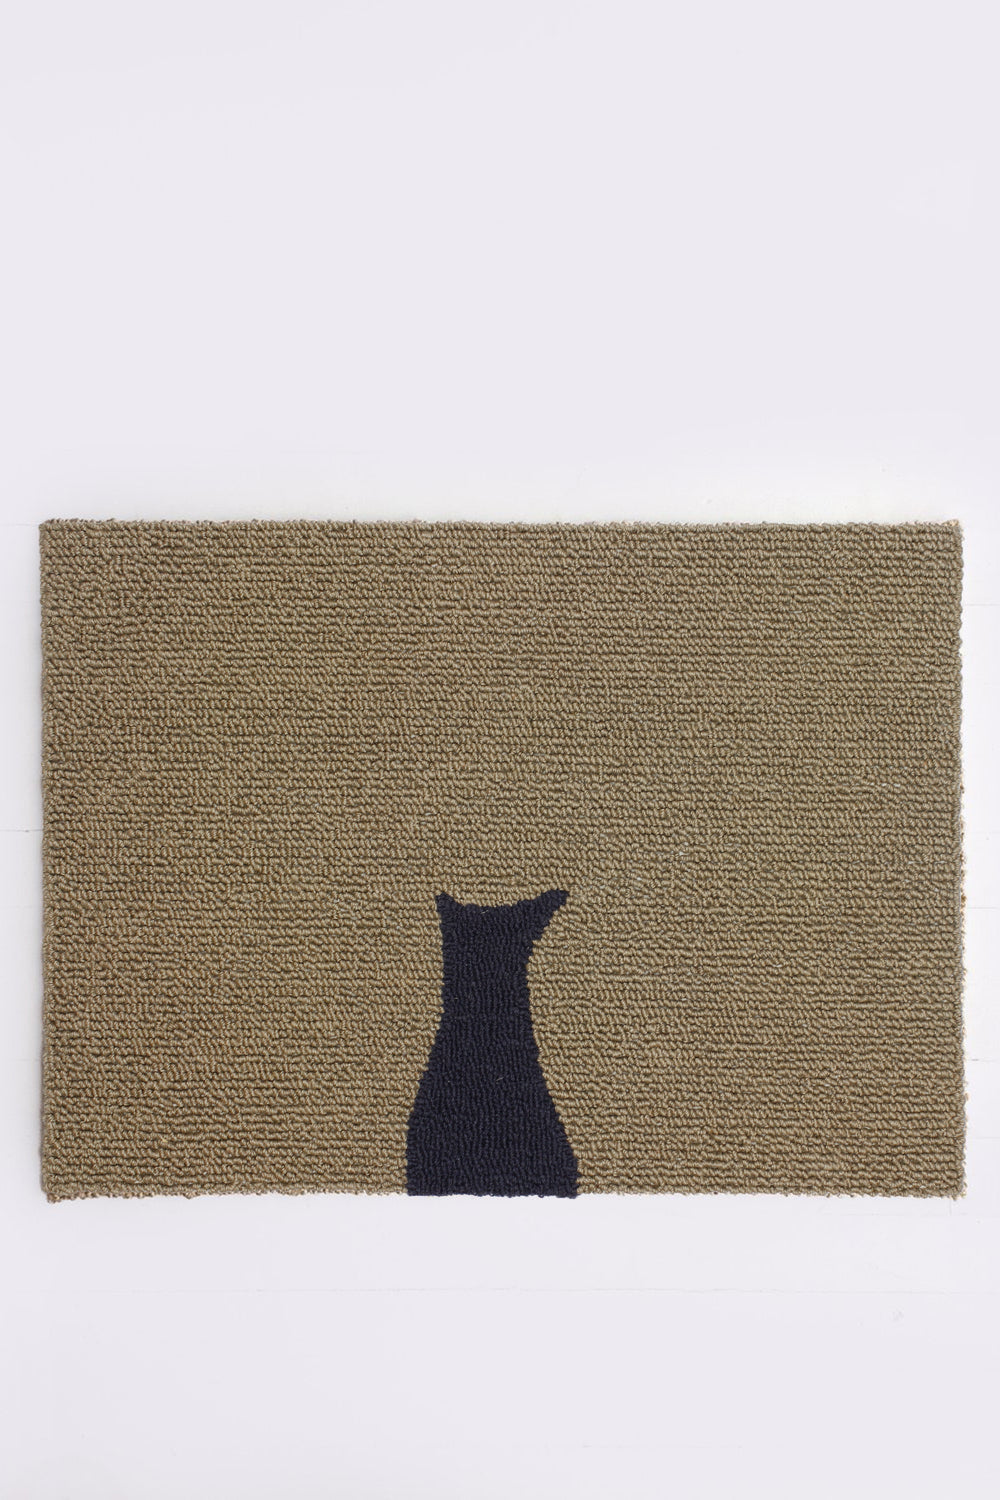 Cat Silhouette Doormat, Gray